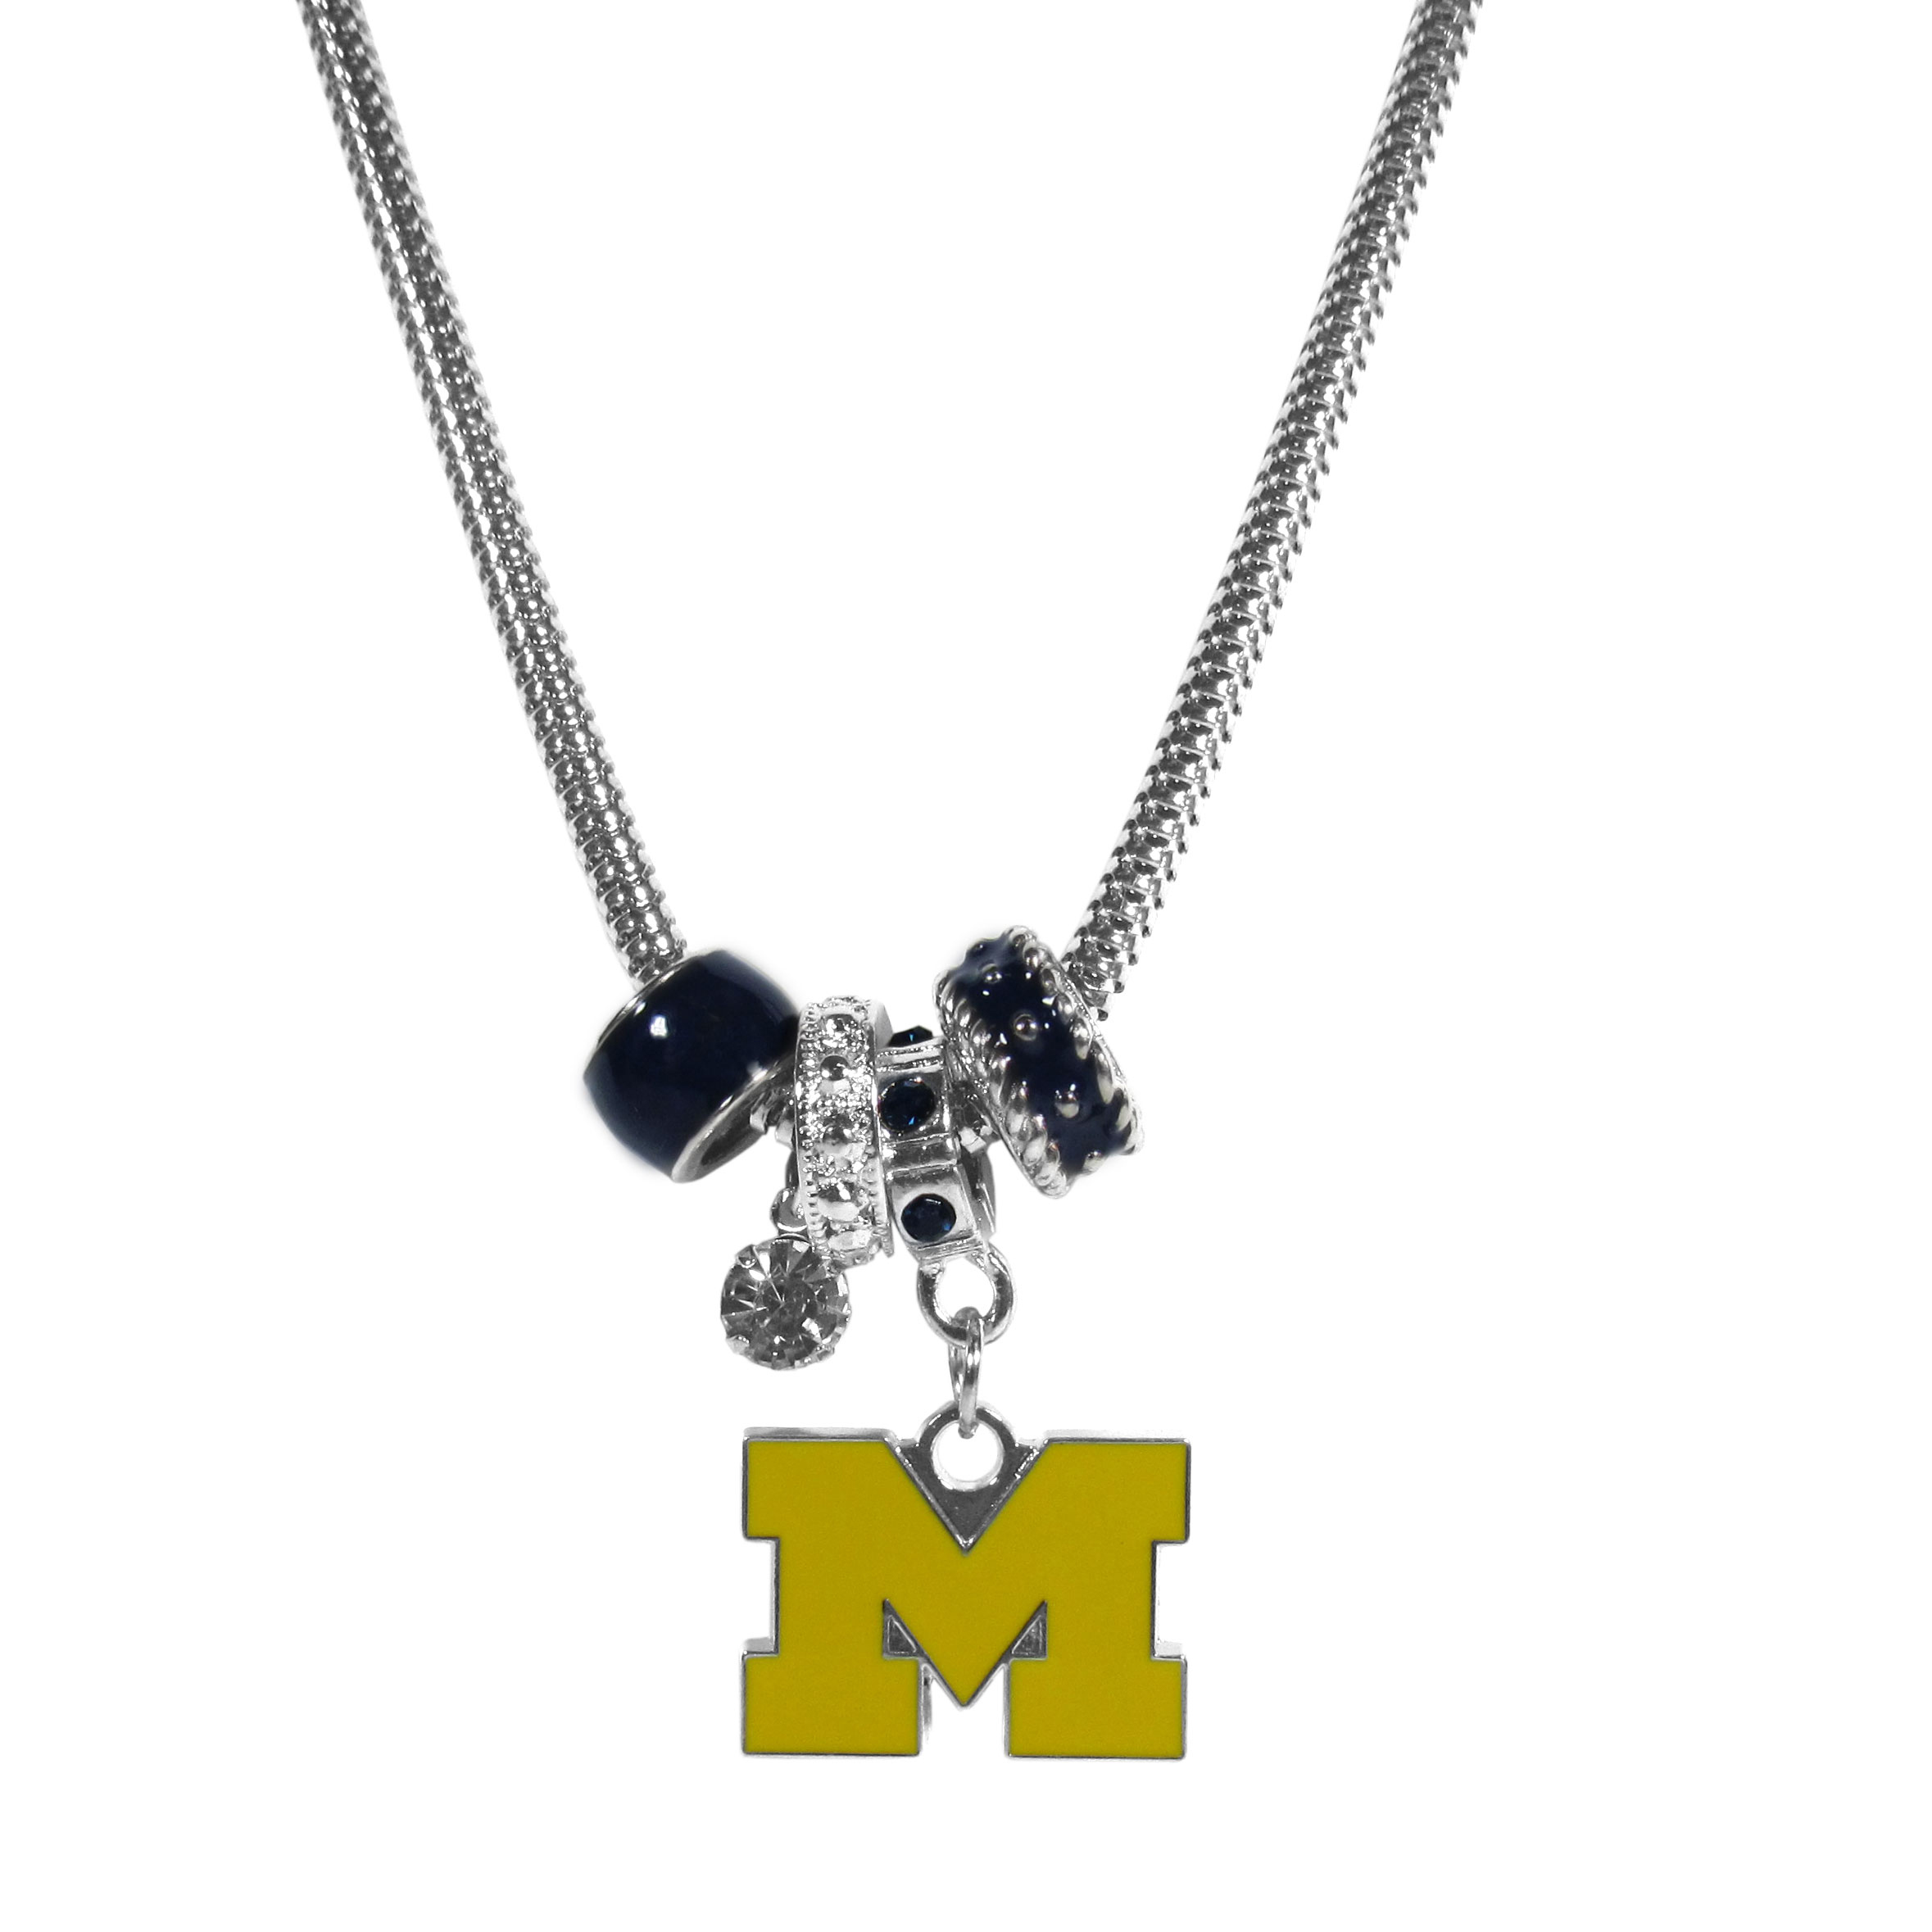 Michigan Wolverines Euro Bead Necklace - We have combined the wildly popular Euro style beads with your favorite team to create our Michigan Wolverines bead necklace. The 18 inch snake chain features 4 Euro beads with enameled team colors and rhinestone accents with a high polish, nickel free charm and rhinestone charm. Perfect way to show off your team pride.